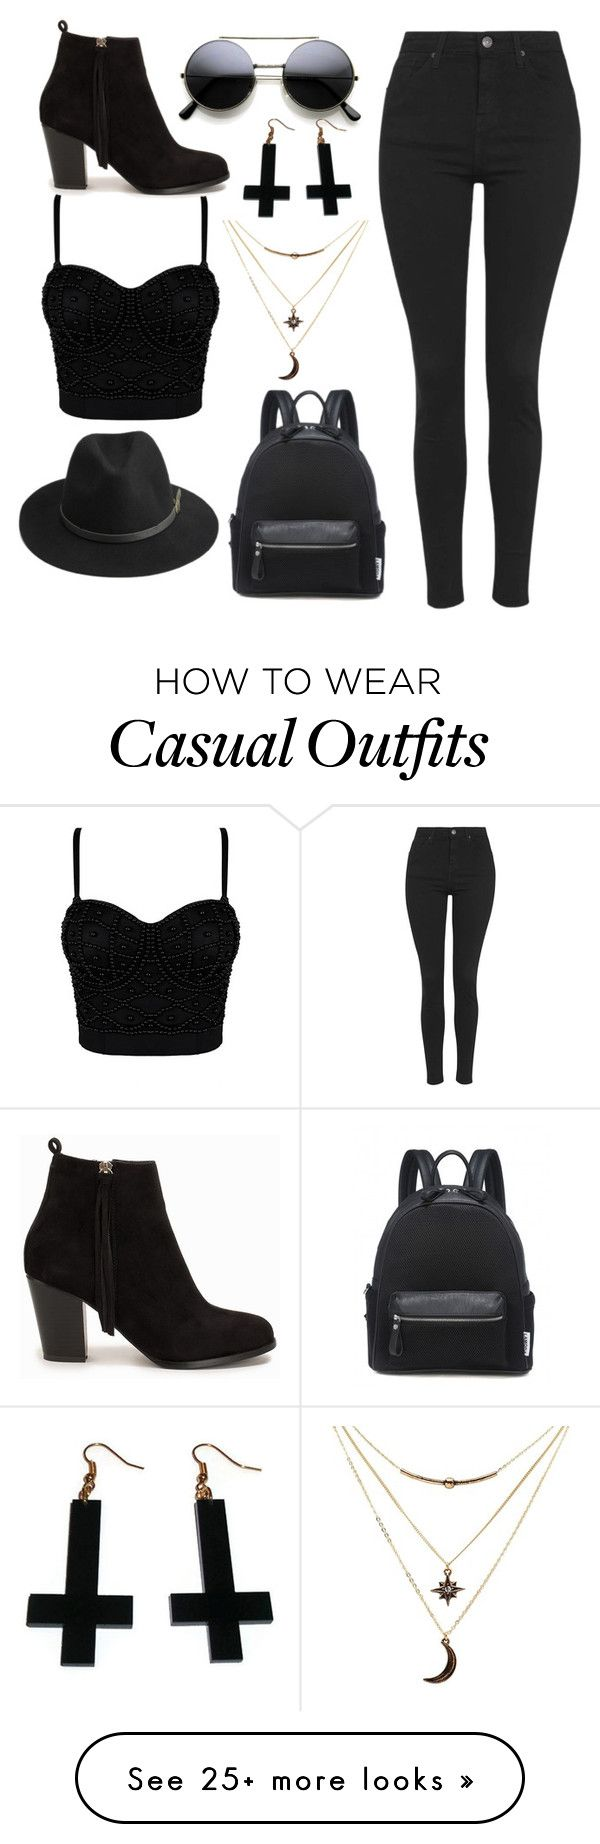 """""""black casual"""" by ruthjauregui on Polyvore featuring BeckSöndergaard, Topshop, Nly Shoes, Charlotte Russe and Chicnova Fashion"""